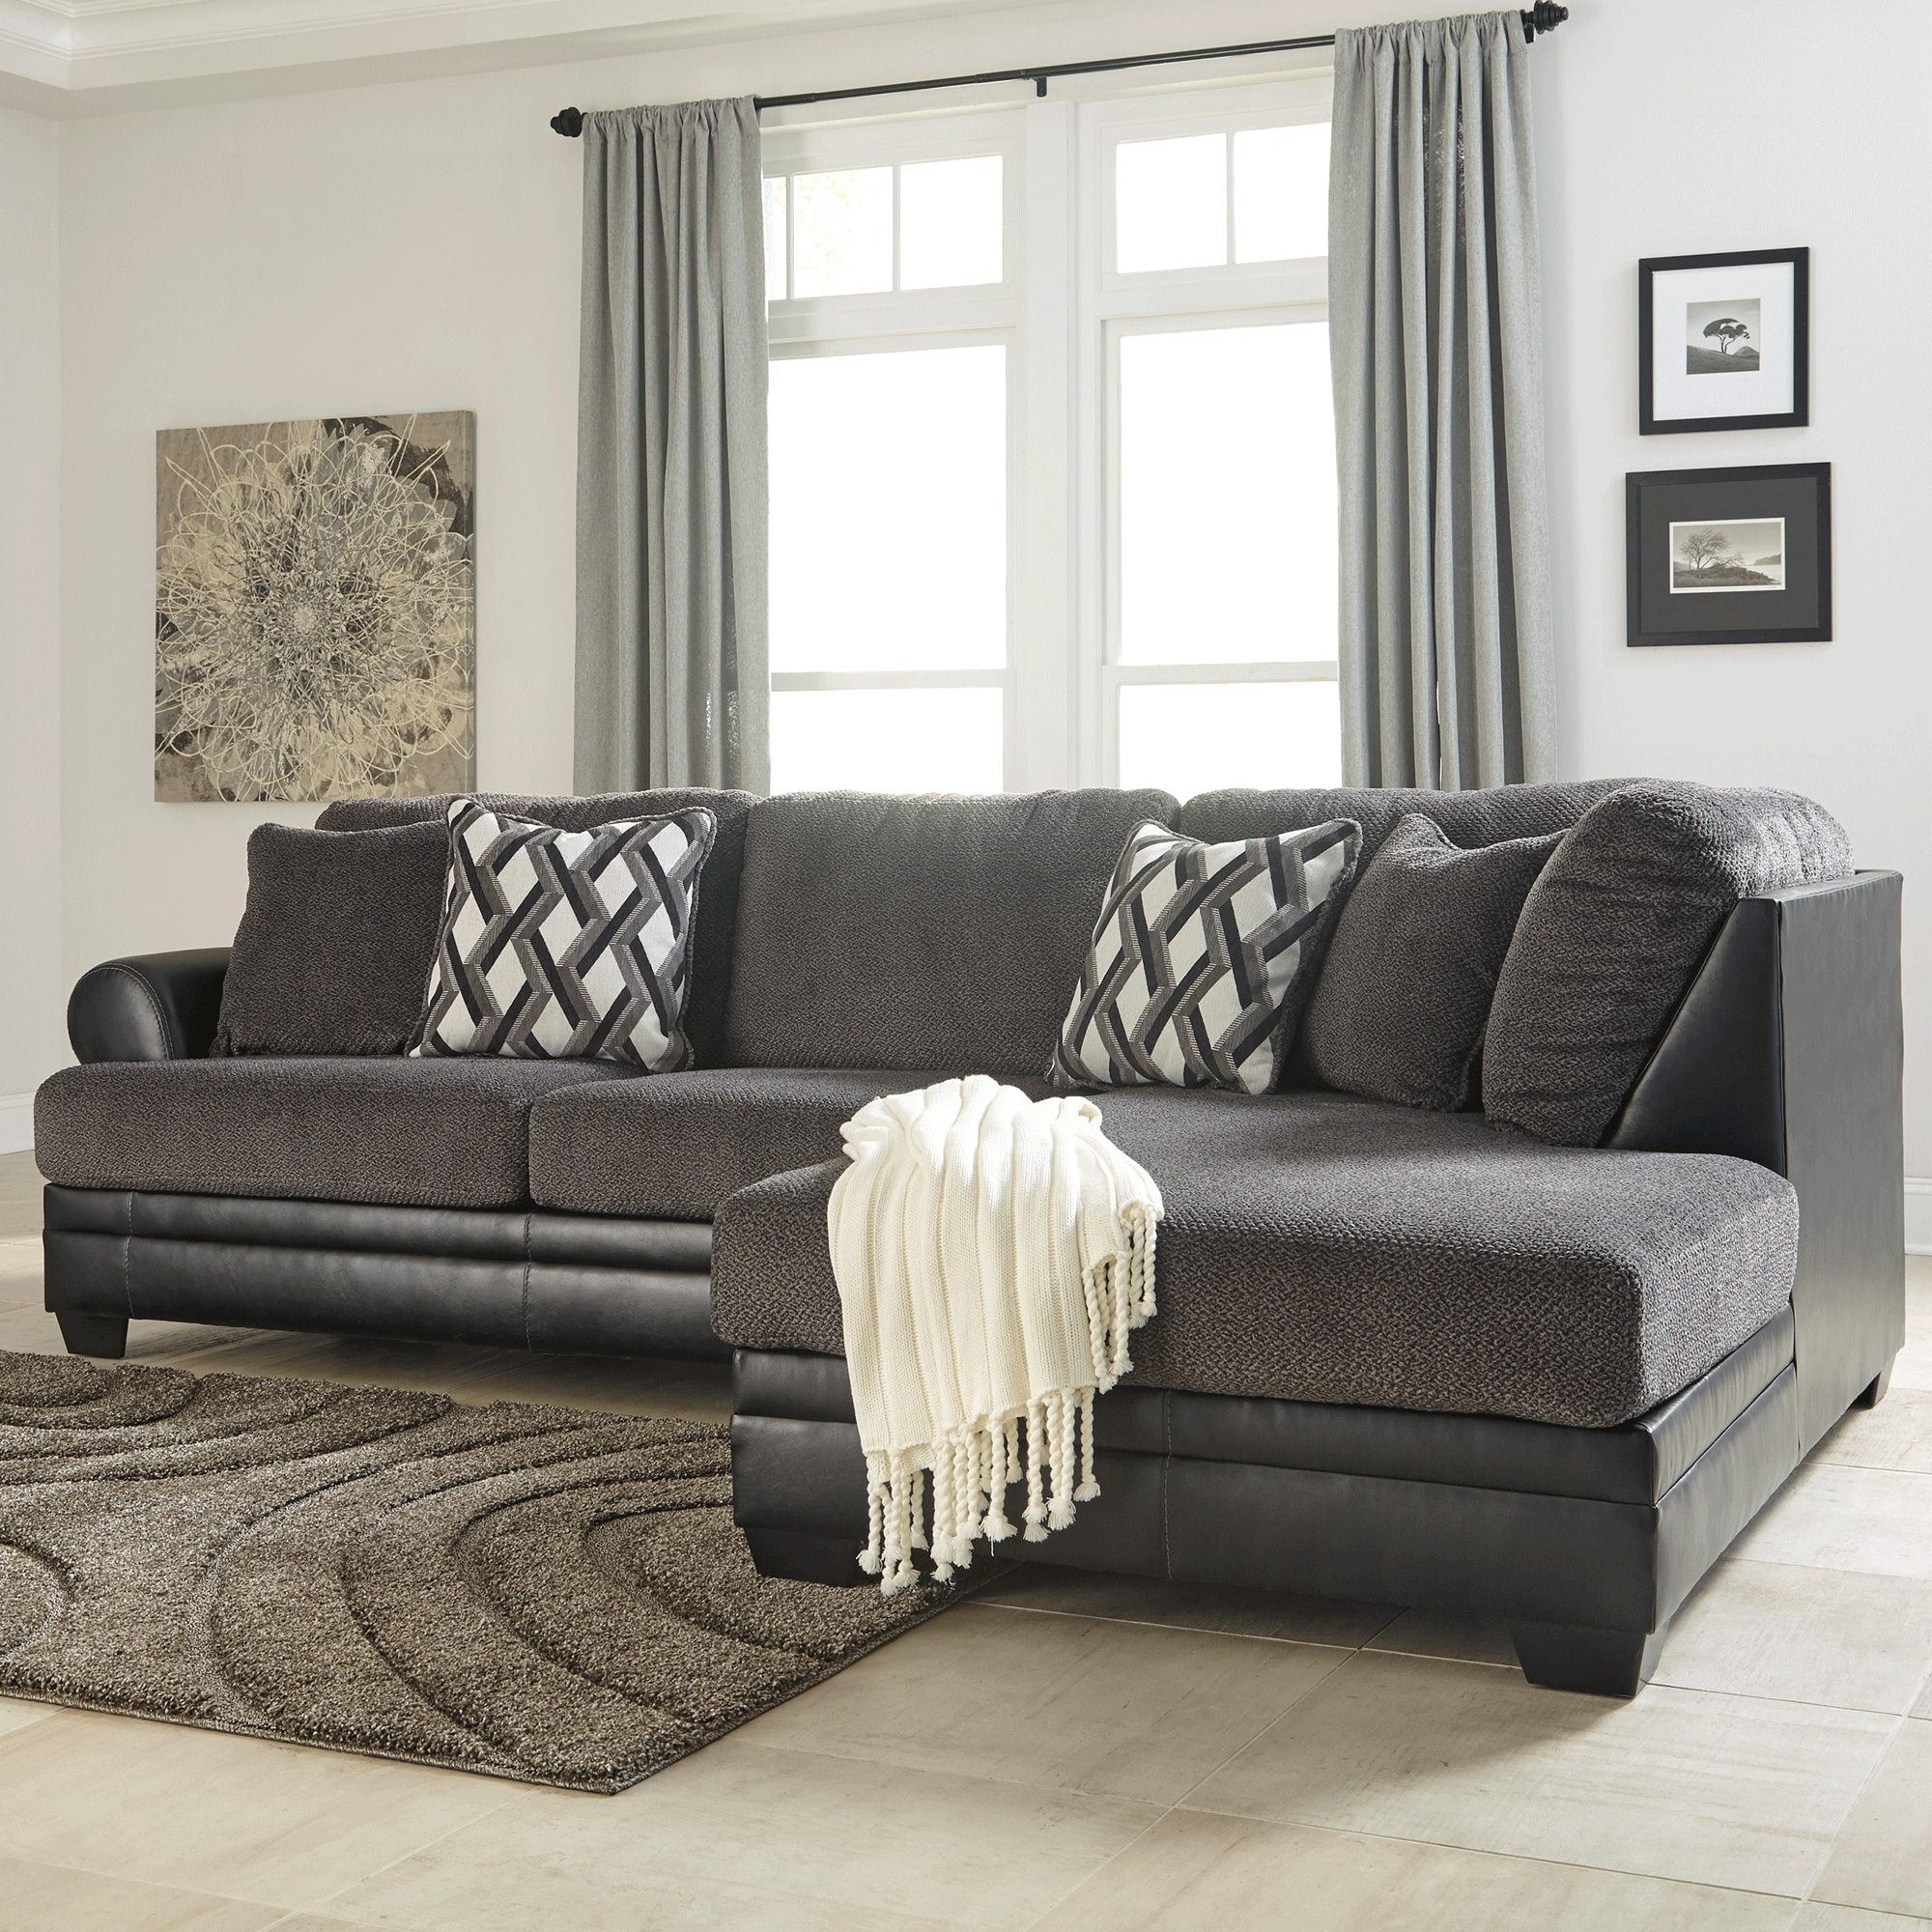 Ashley Furniture Sofa Chaises Throughout Most Current Kumasi Smoke 2 Piece Sectional – Bernie & Phyl's Furniture – (View 15 of 15)